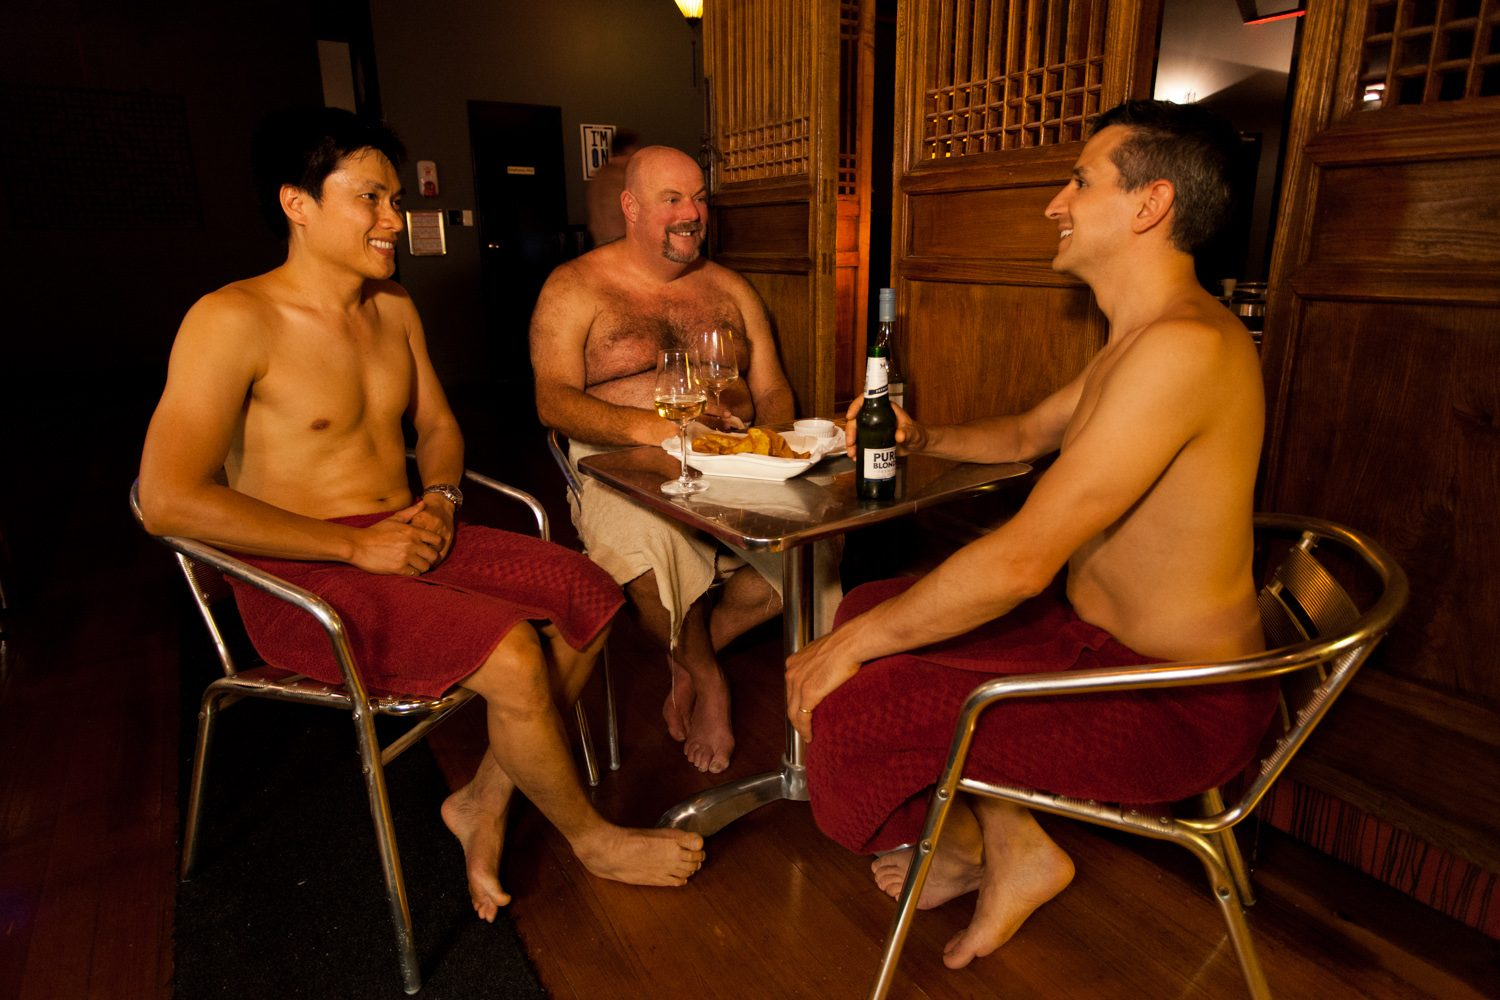 Gay Sauna Pictures 62